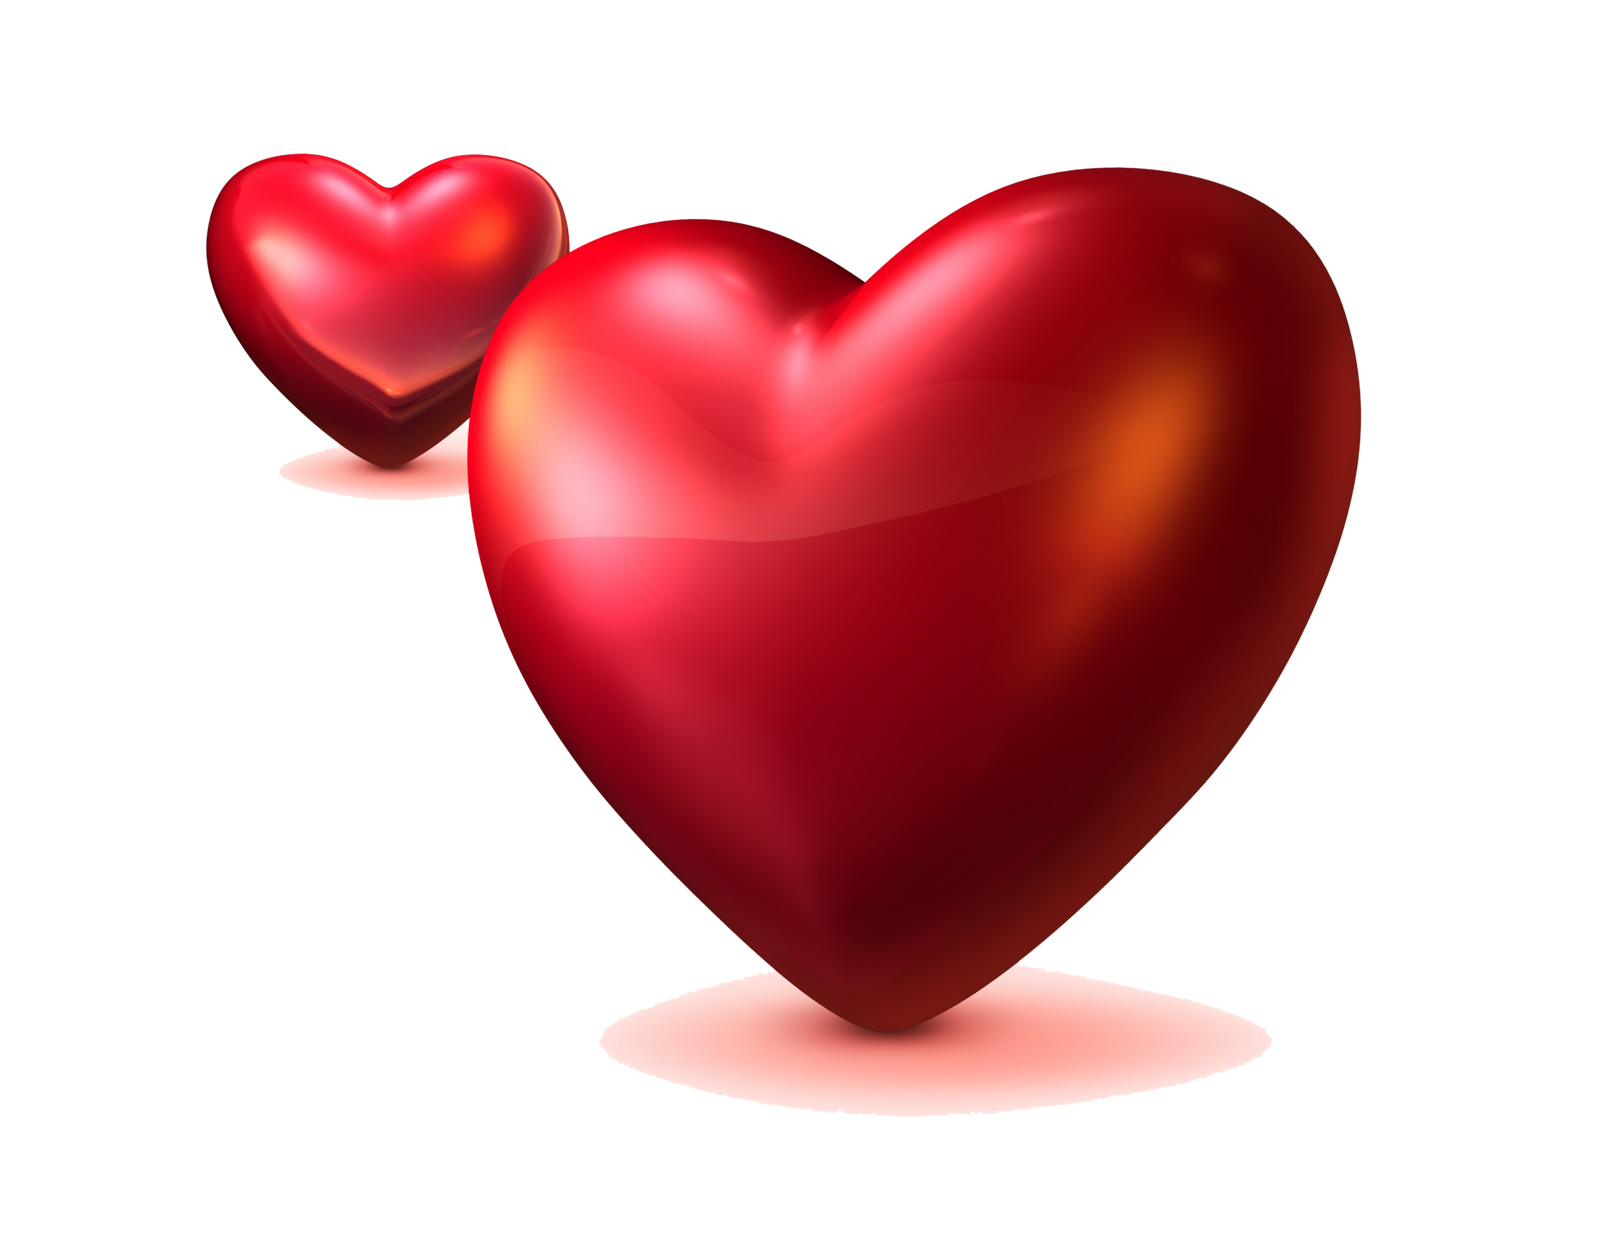 Red Heart Love Png image